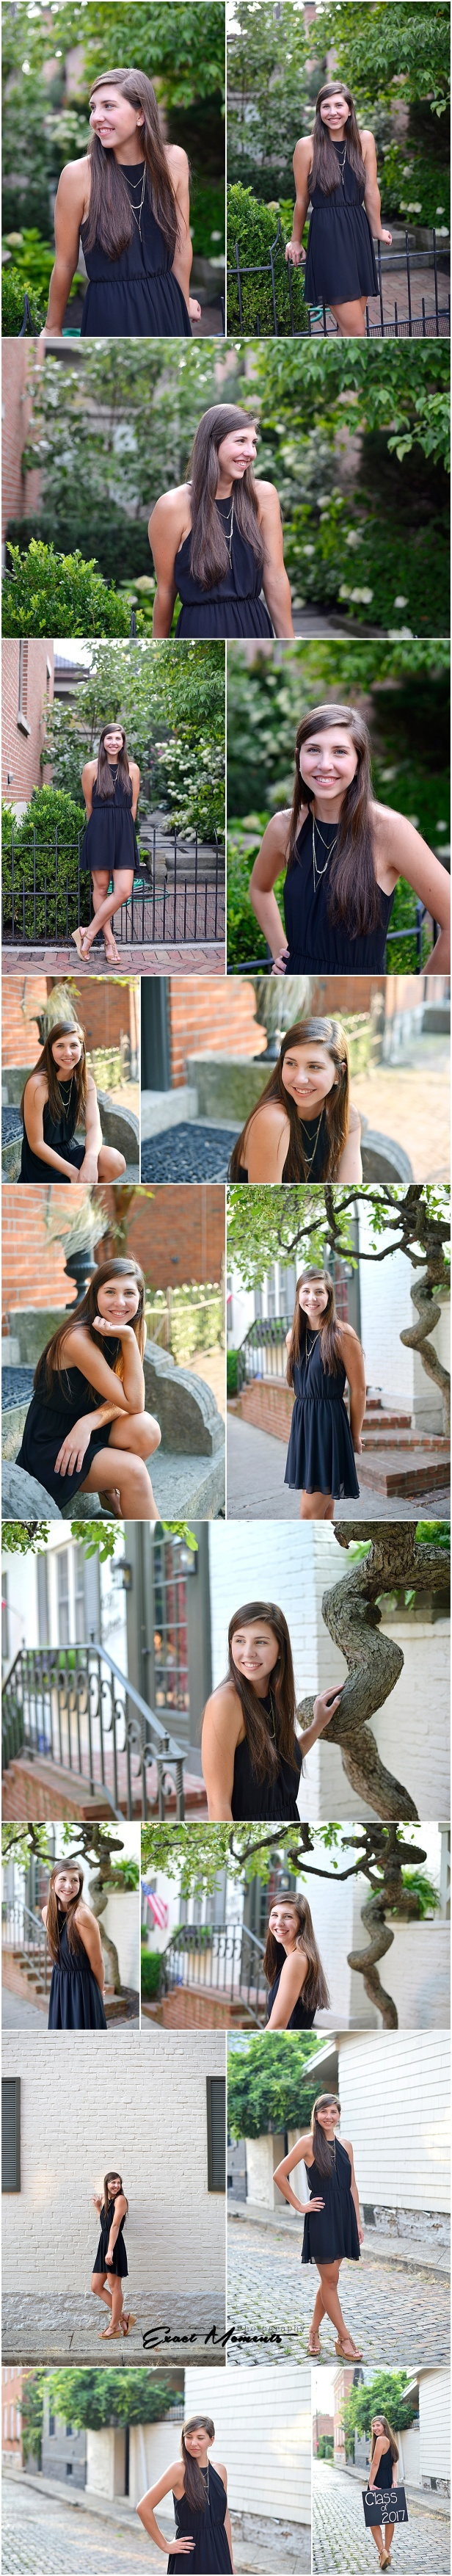 senior-photos-german-village-columbus-ohio